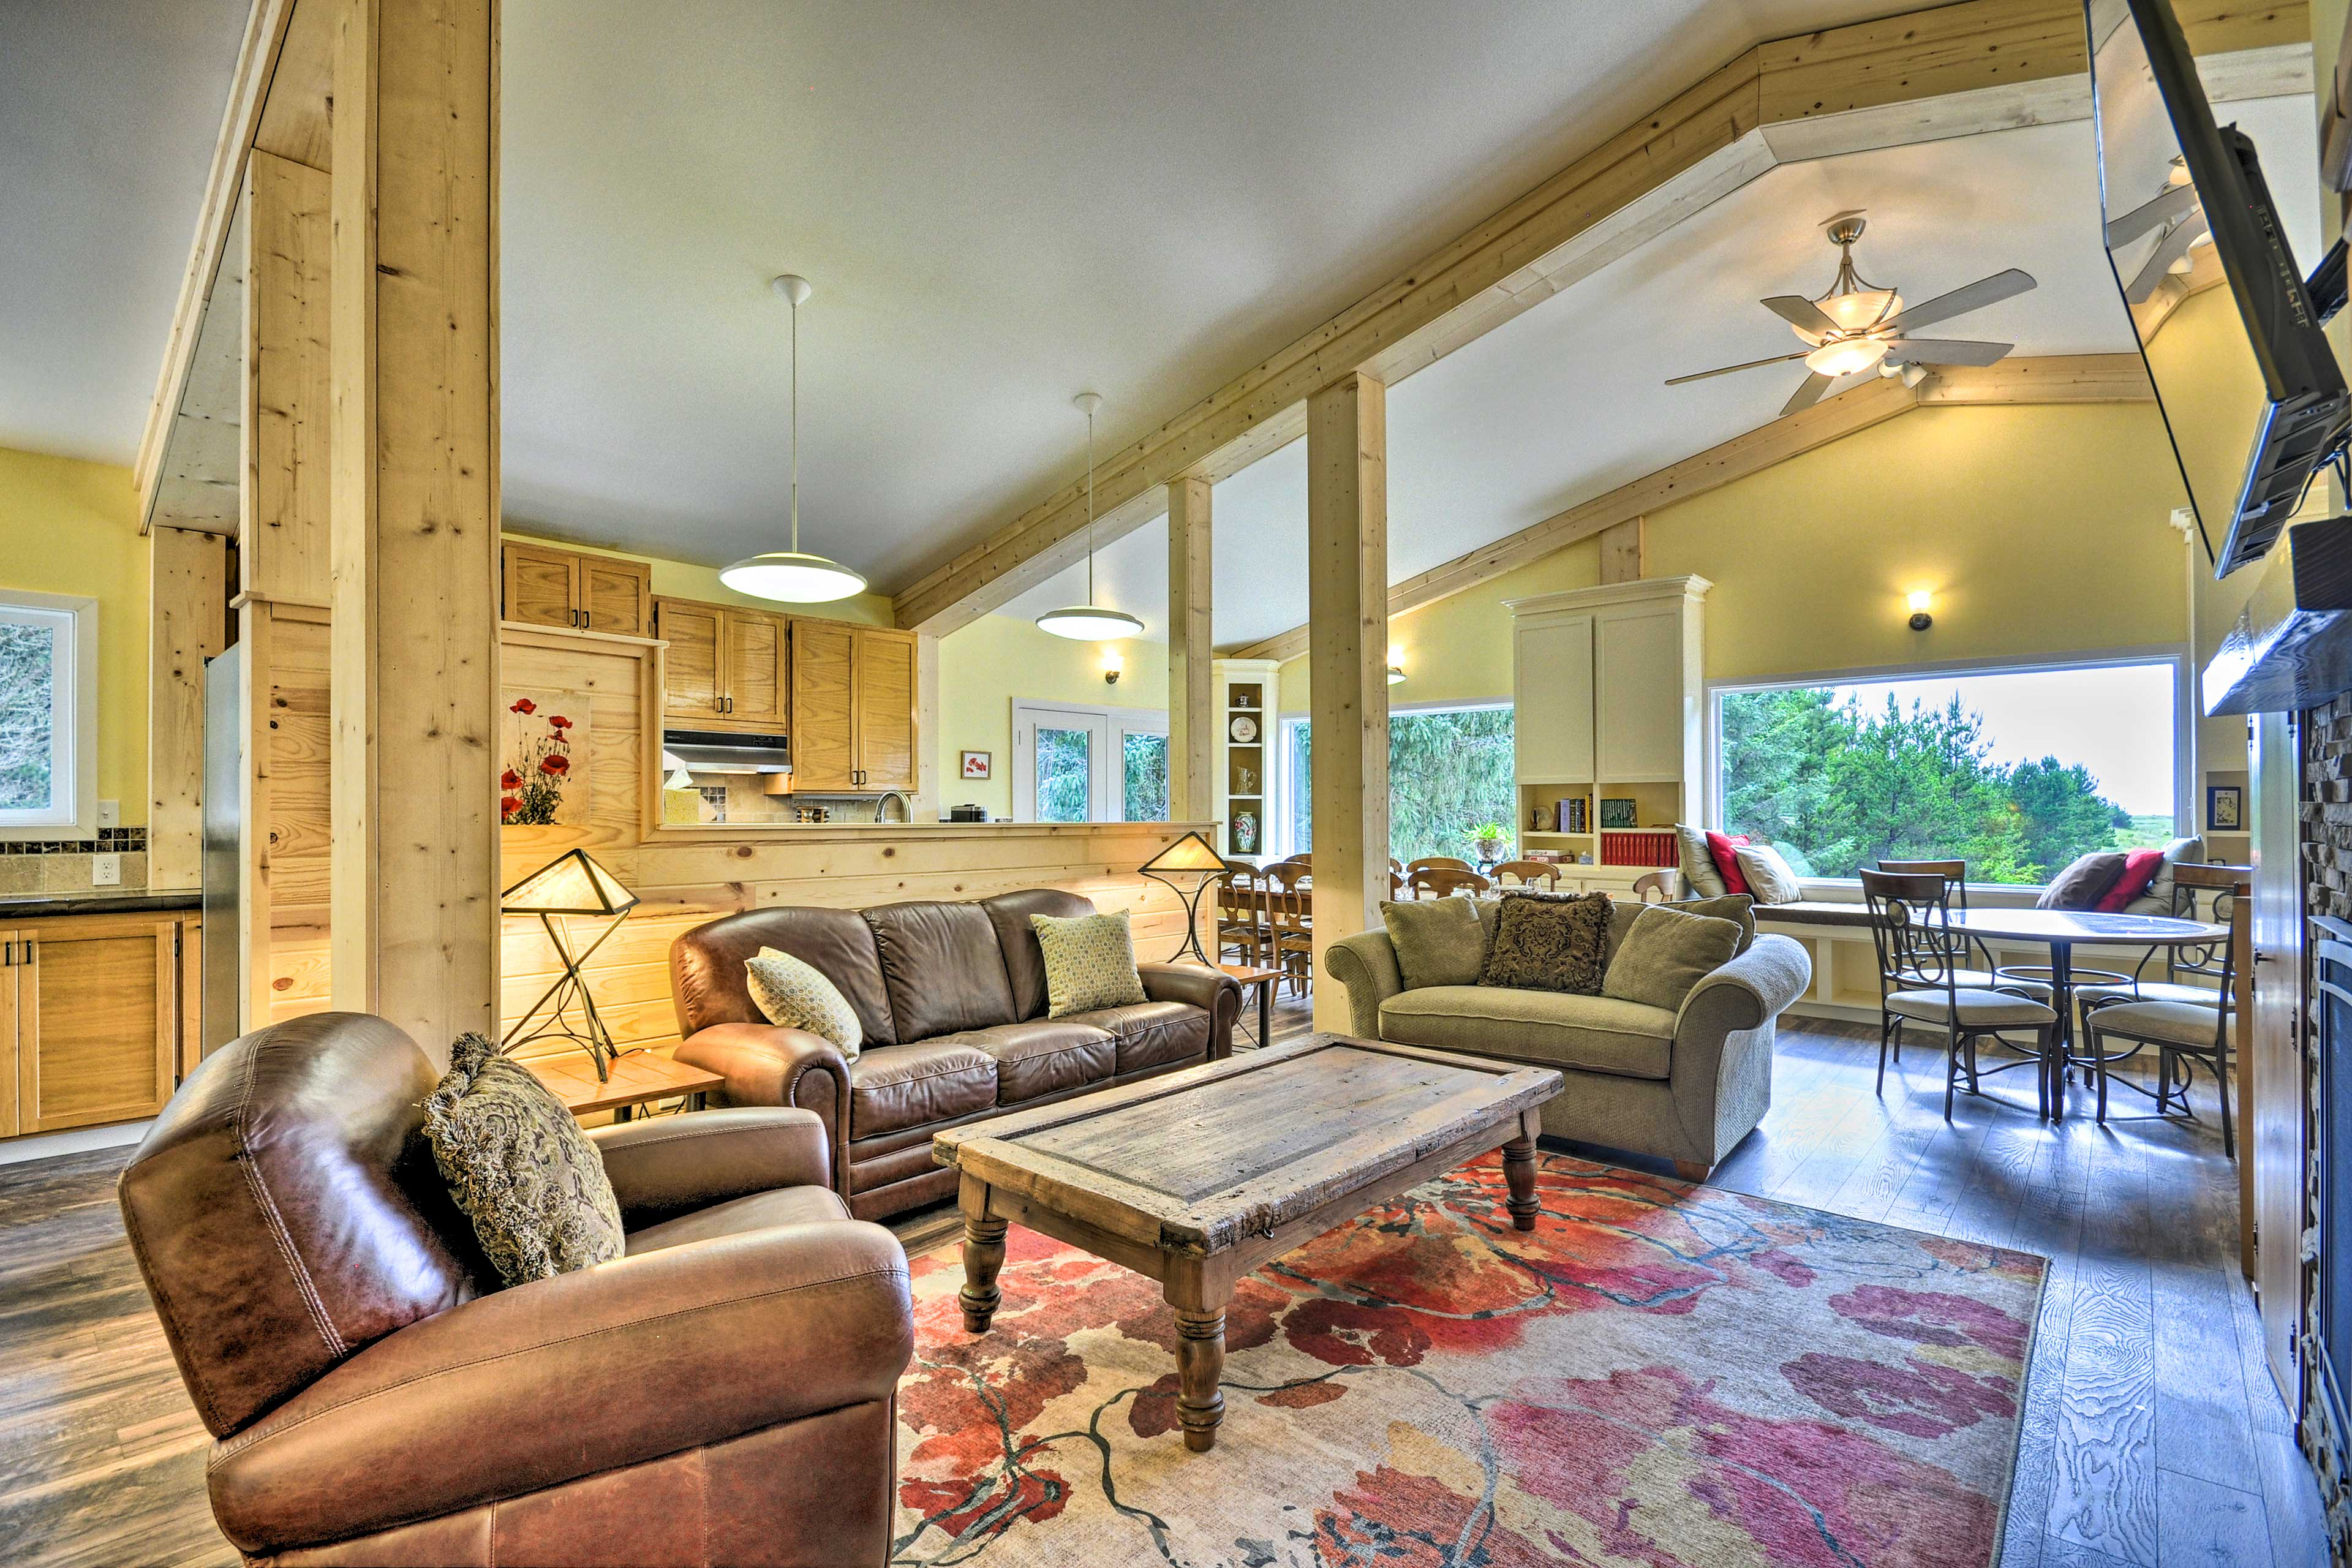 Upstairs Living Room | Central A/C & Heating | Smart TV | Gas Fireplace